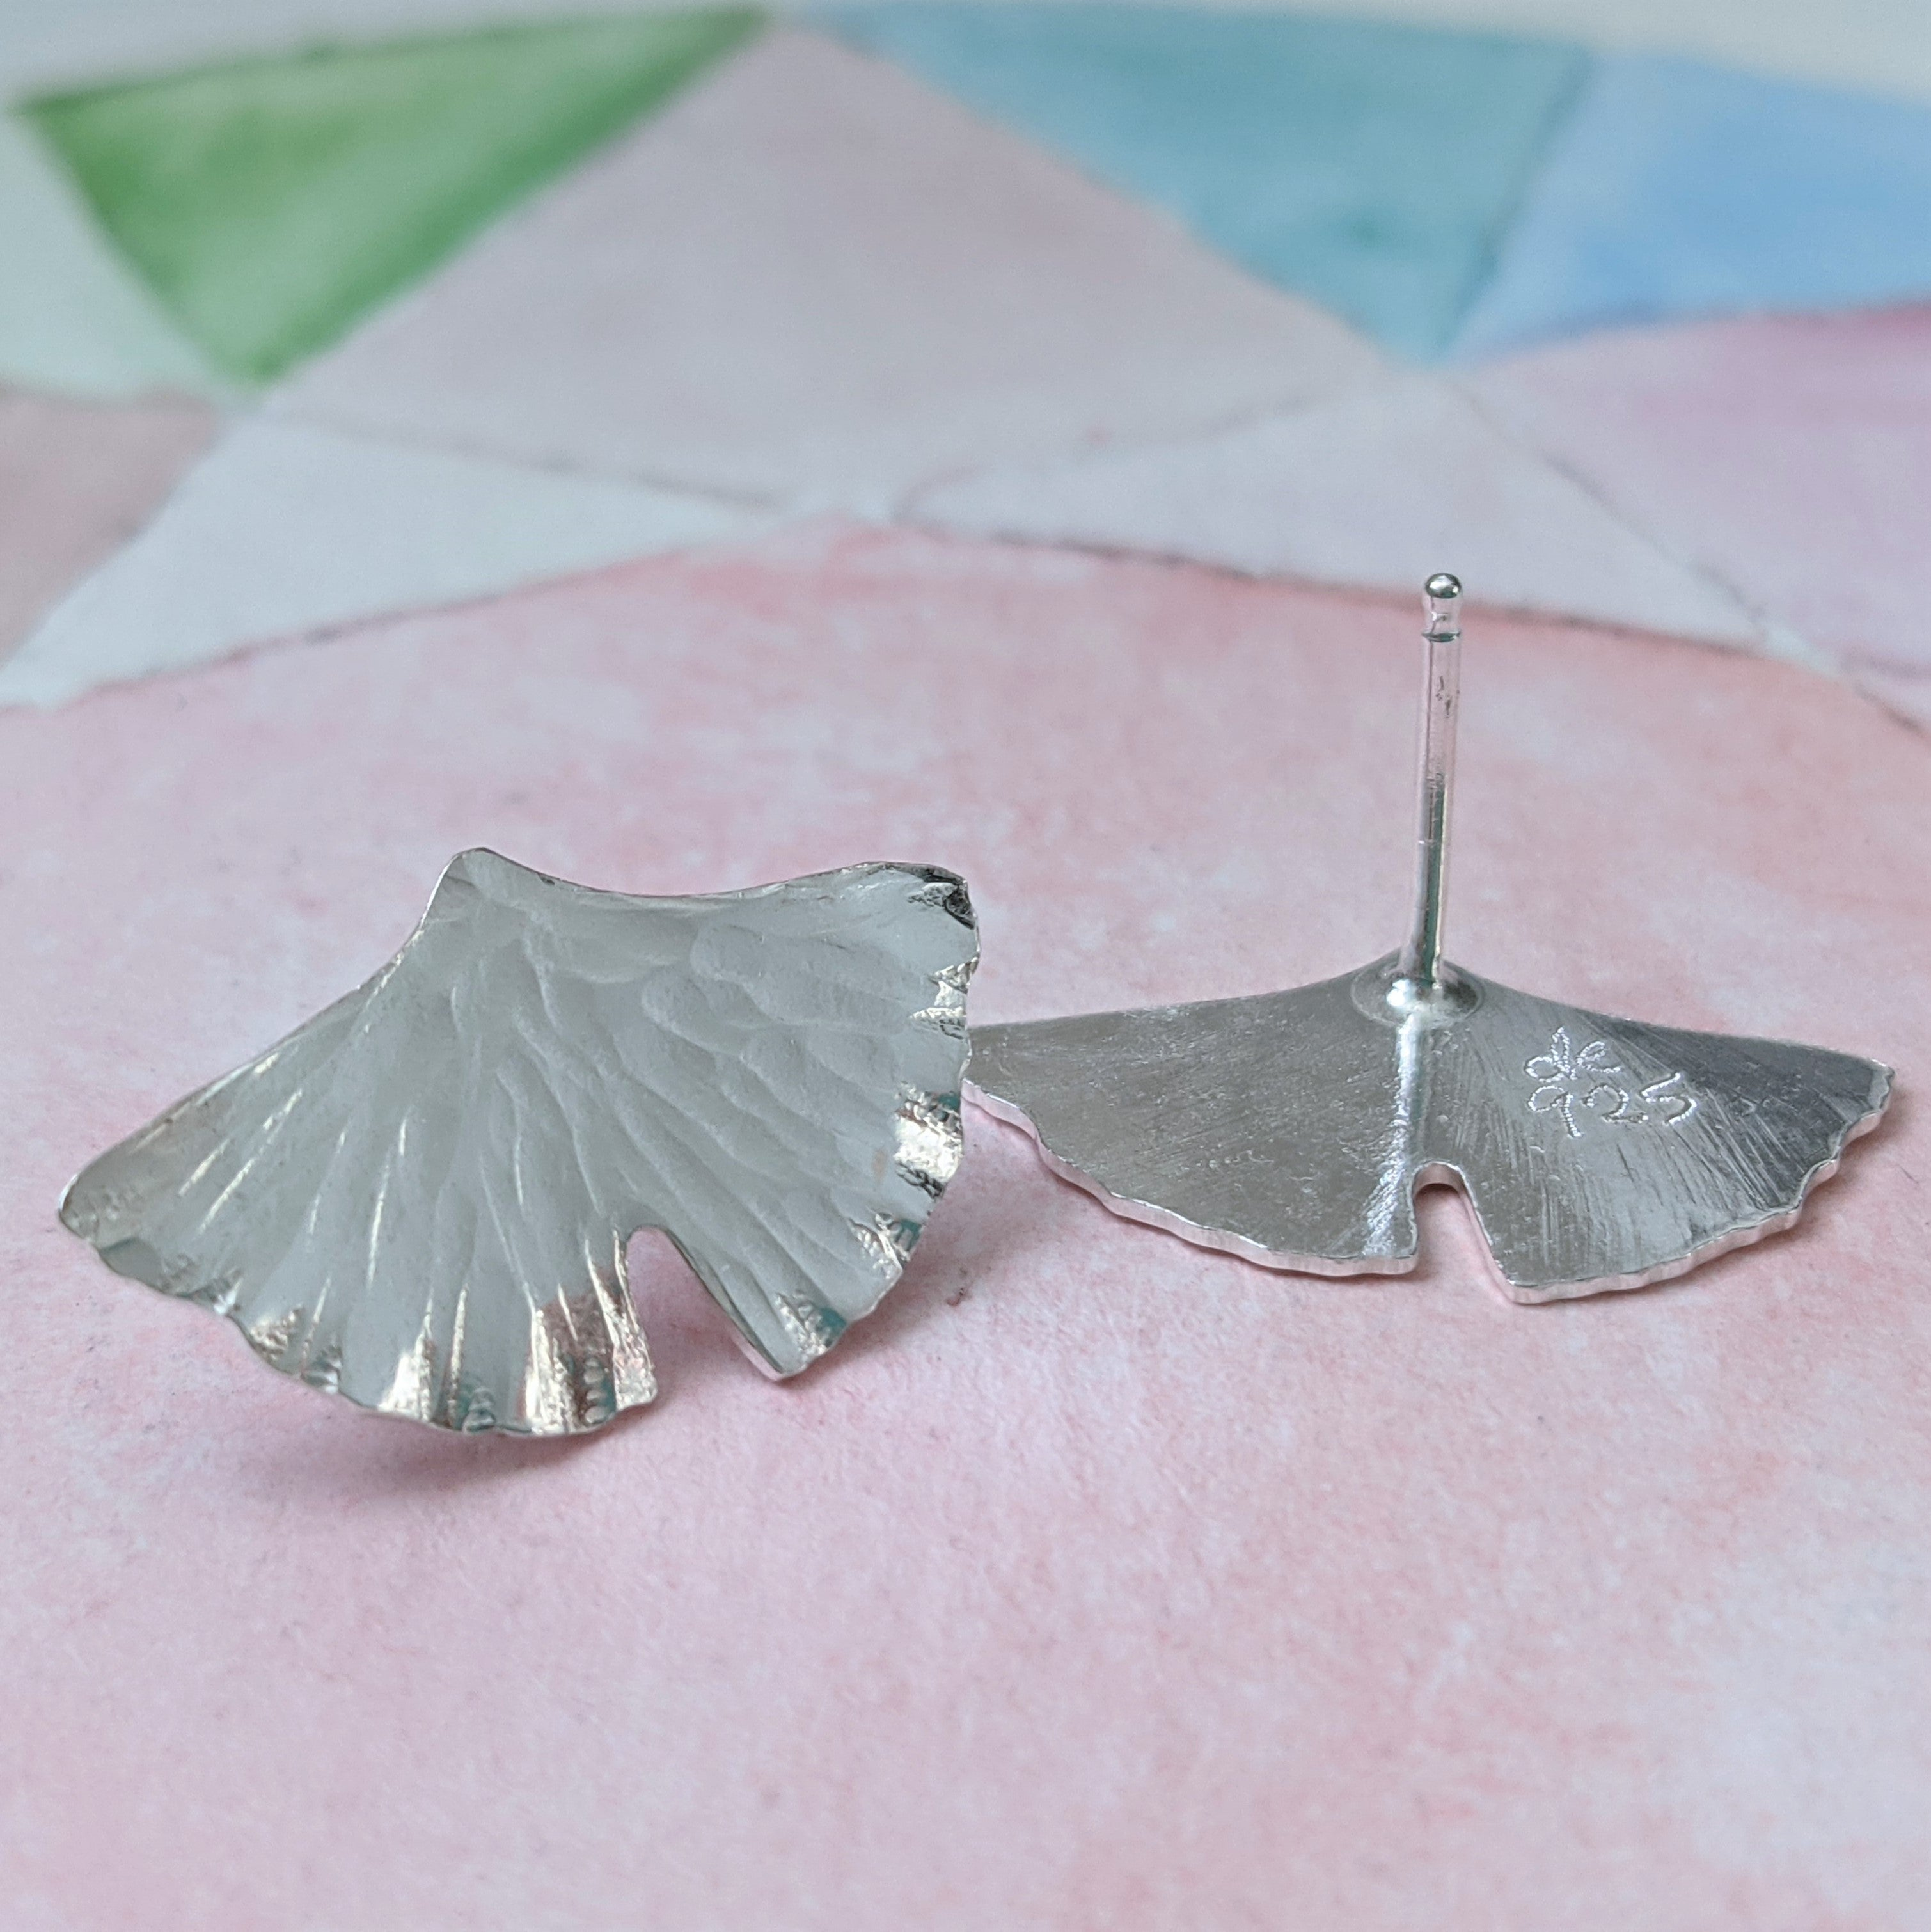 Ginkgo Leaf Post Earrings in Sterling Silver